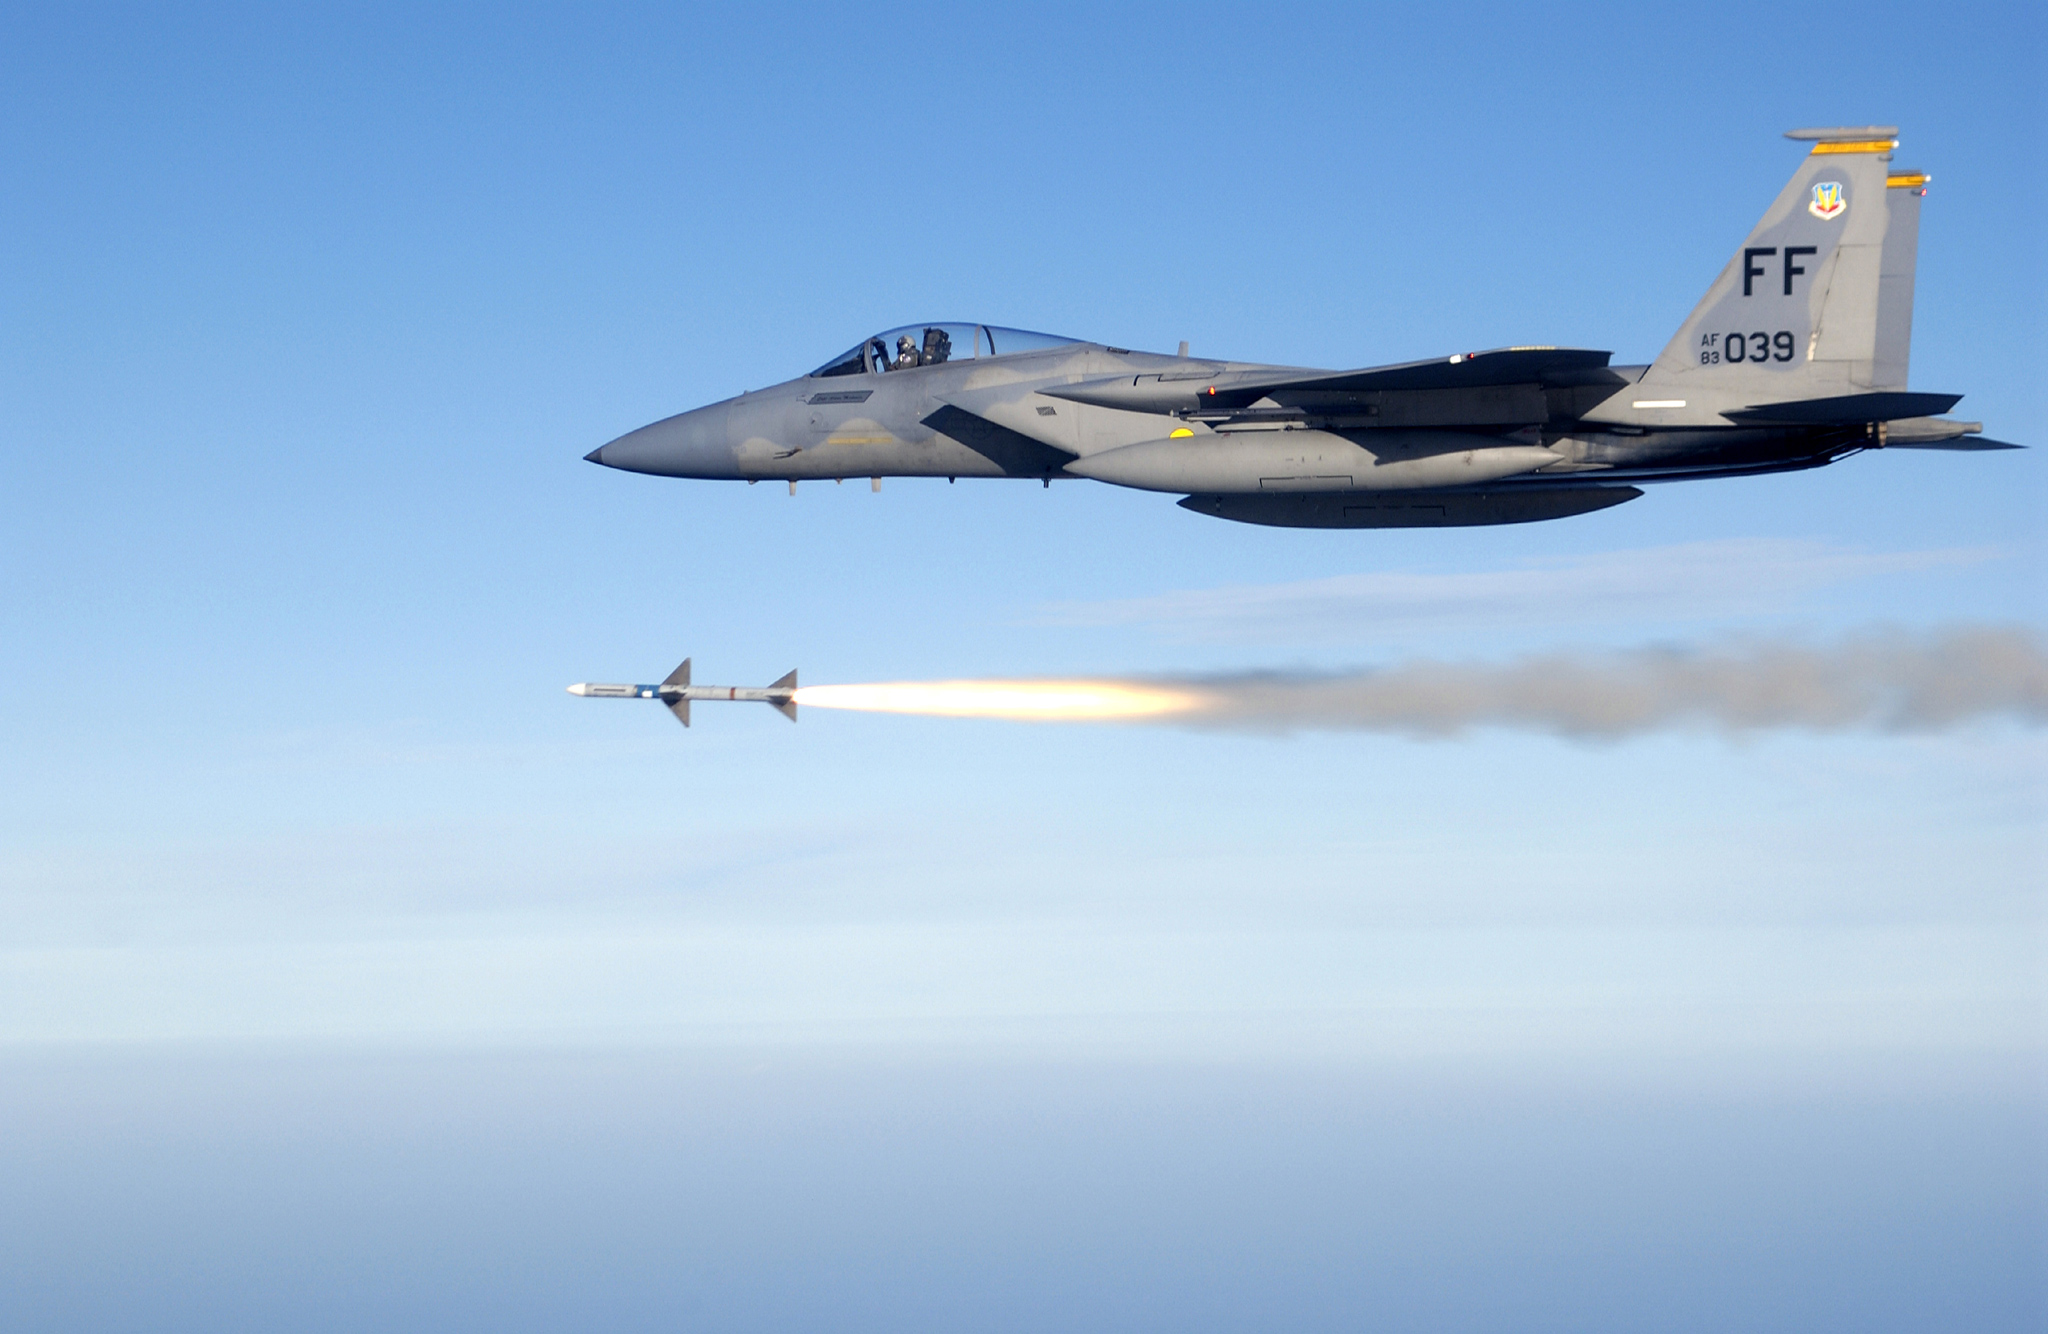 File:USAF F-15C fires AIM-7 Sparrow.jpg - Wikipedia, the free ...